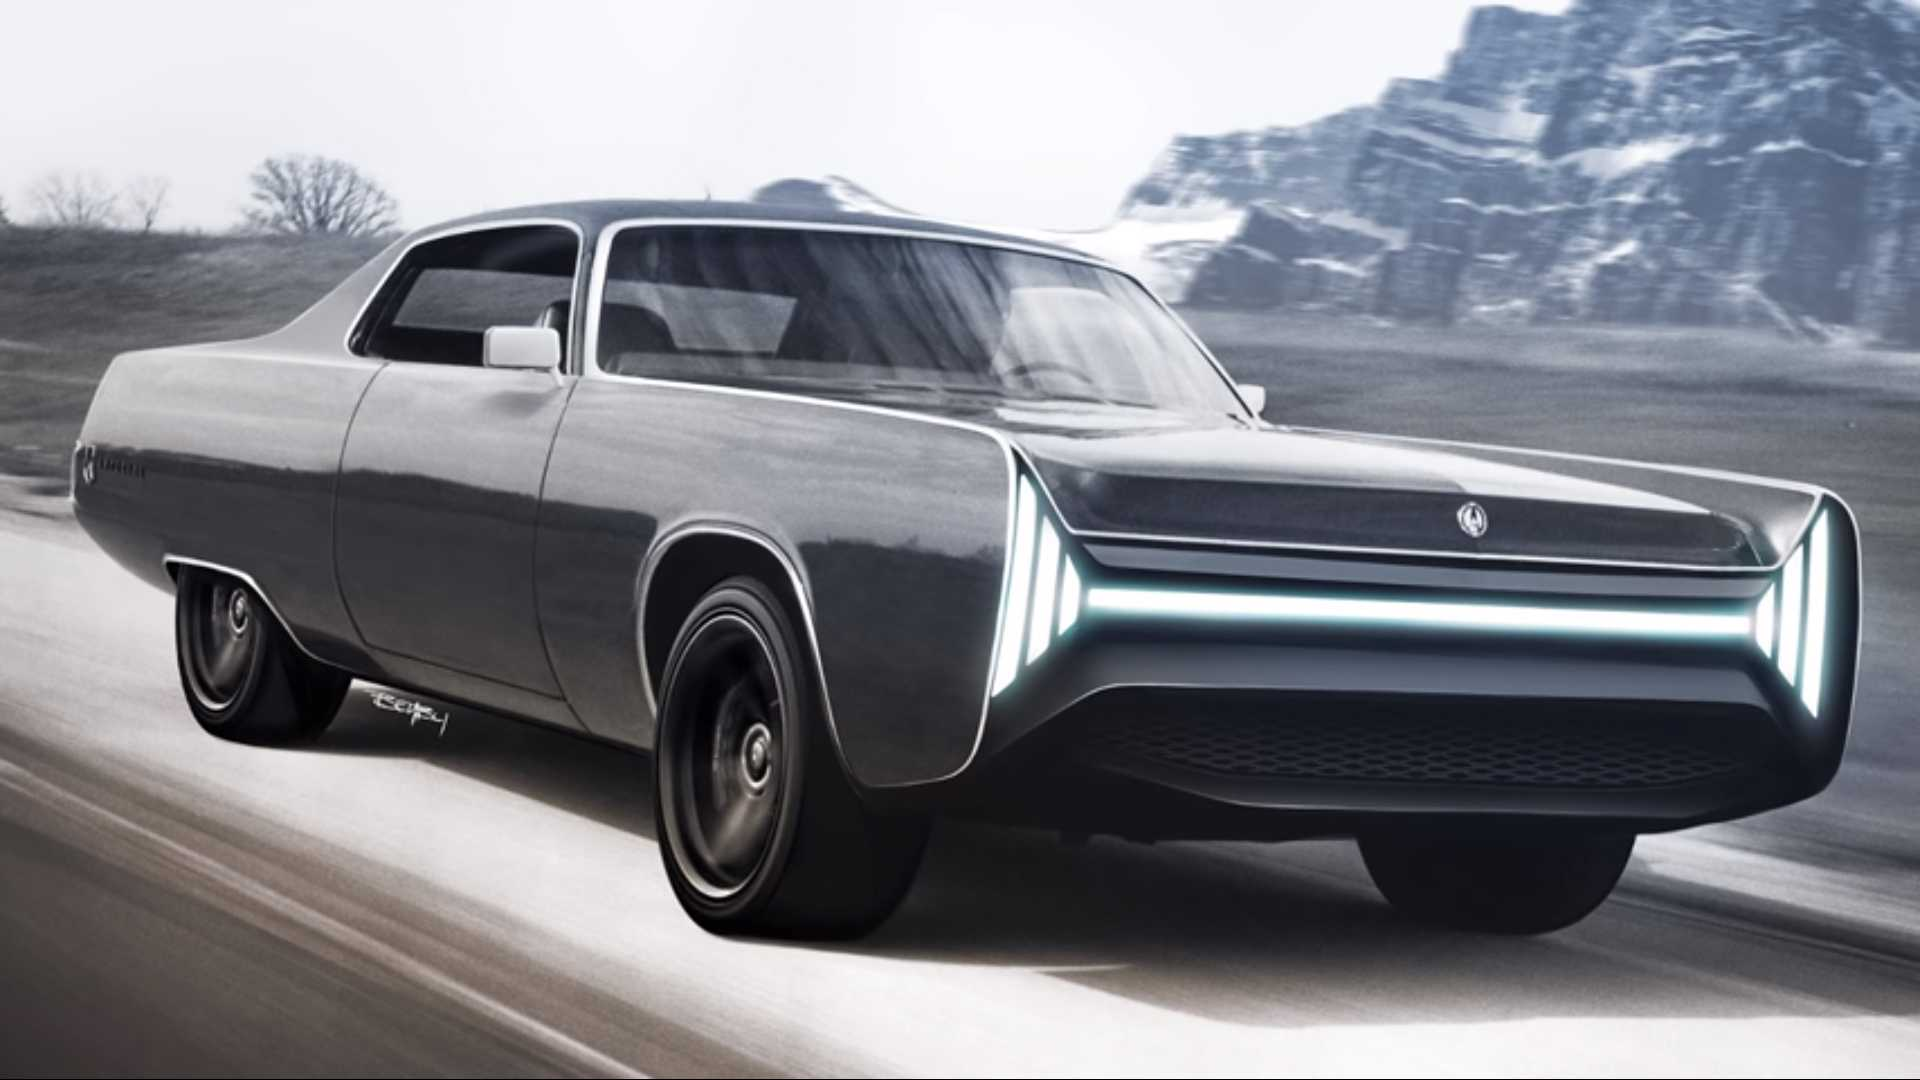 1972 Chrysler Imperial Redesign Is Befitting Of A Sith Lord